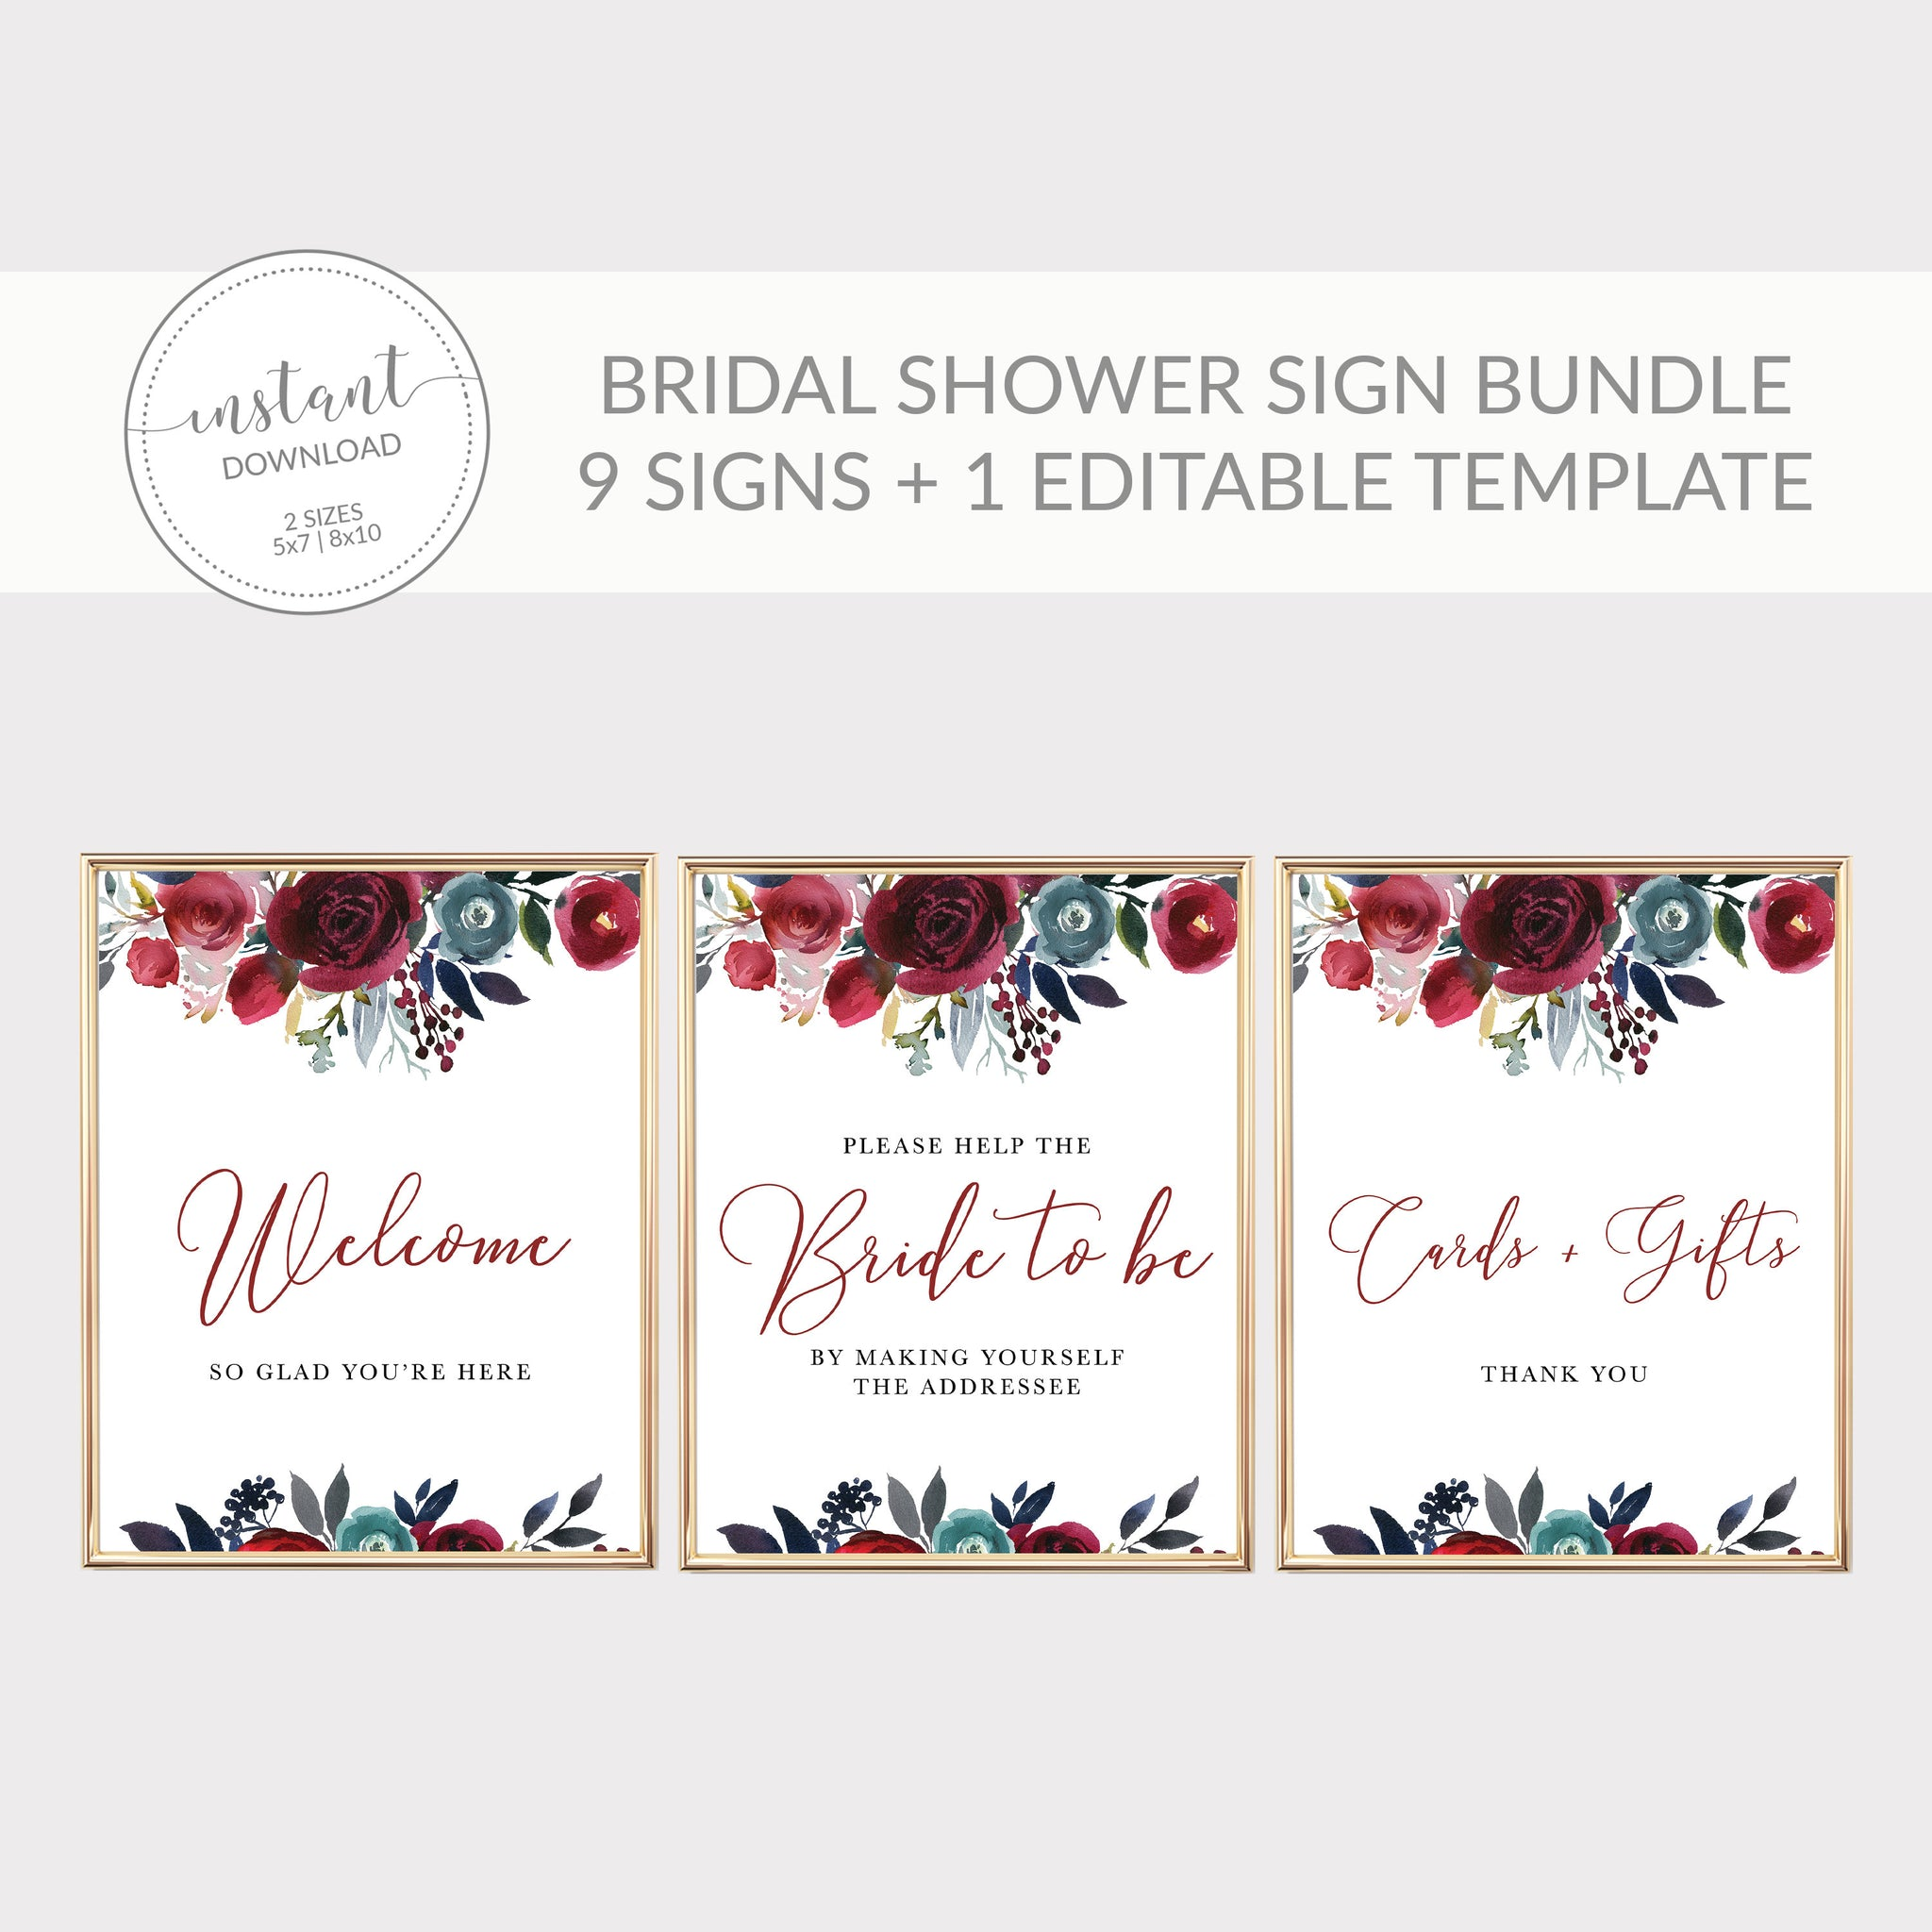 Burgundy and Navy Bridal Shower Decorations, Burgundy Bridal Shower Sign Bundle, Editable Bridal Shower Template, DIGITAL DOWNLOAD - BB100 - @PlumPolkaDot